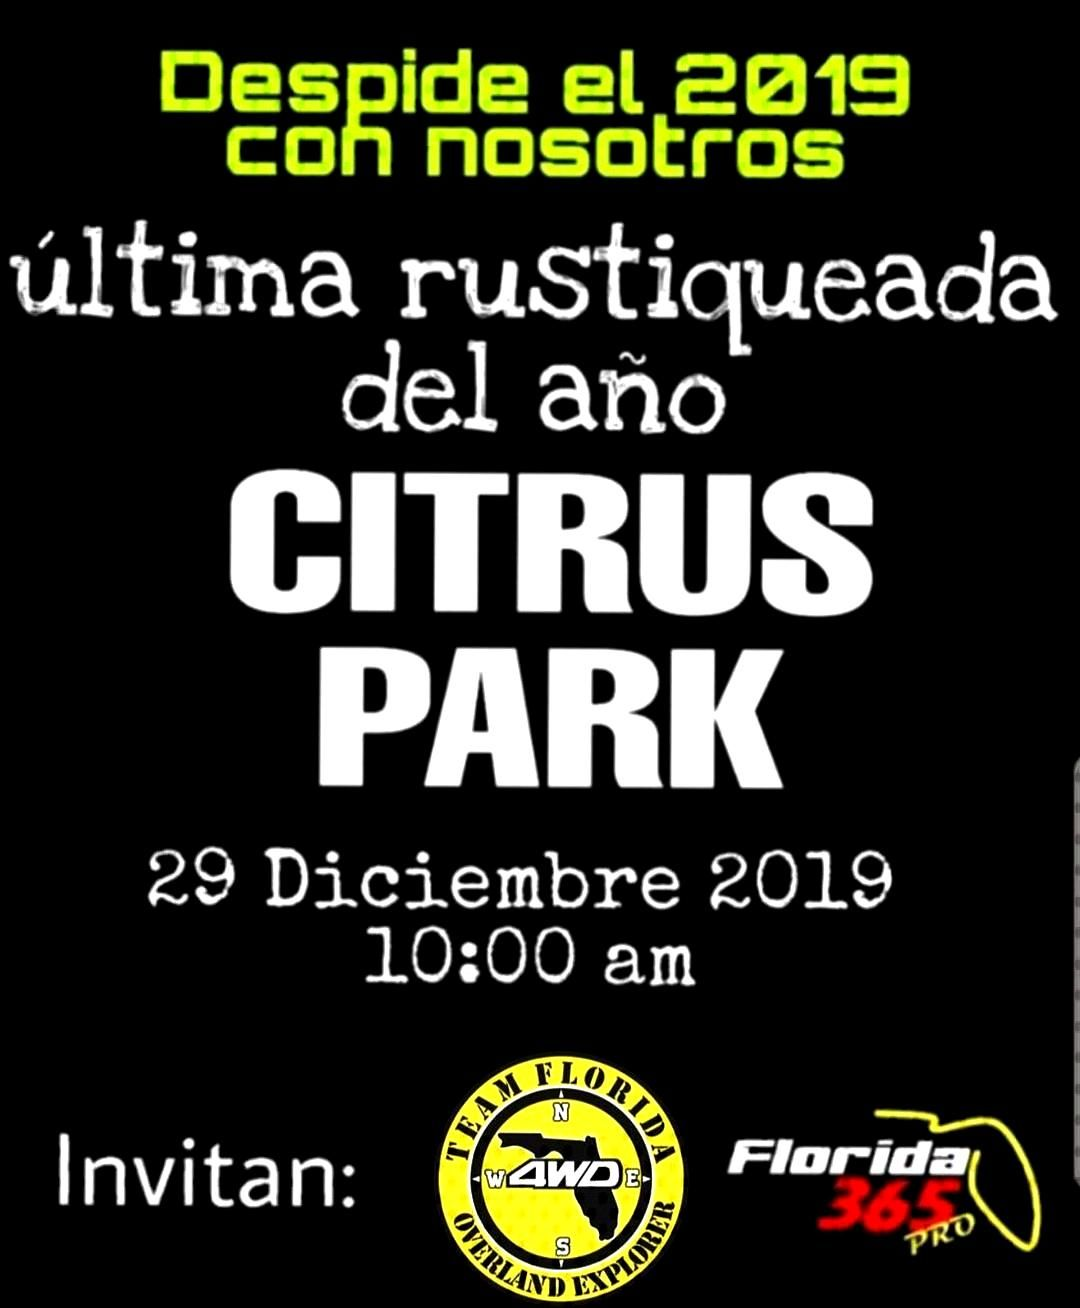 Come with us and enjoy the last meet for this year